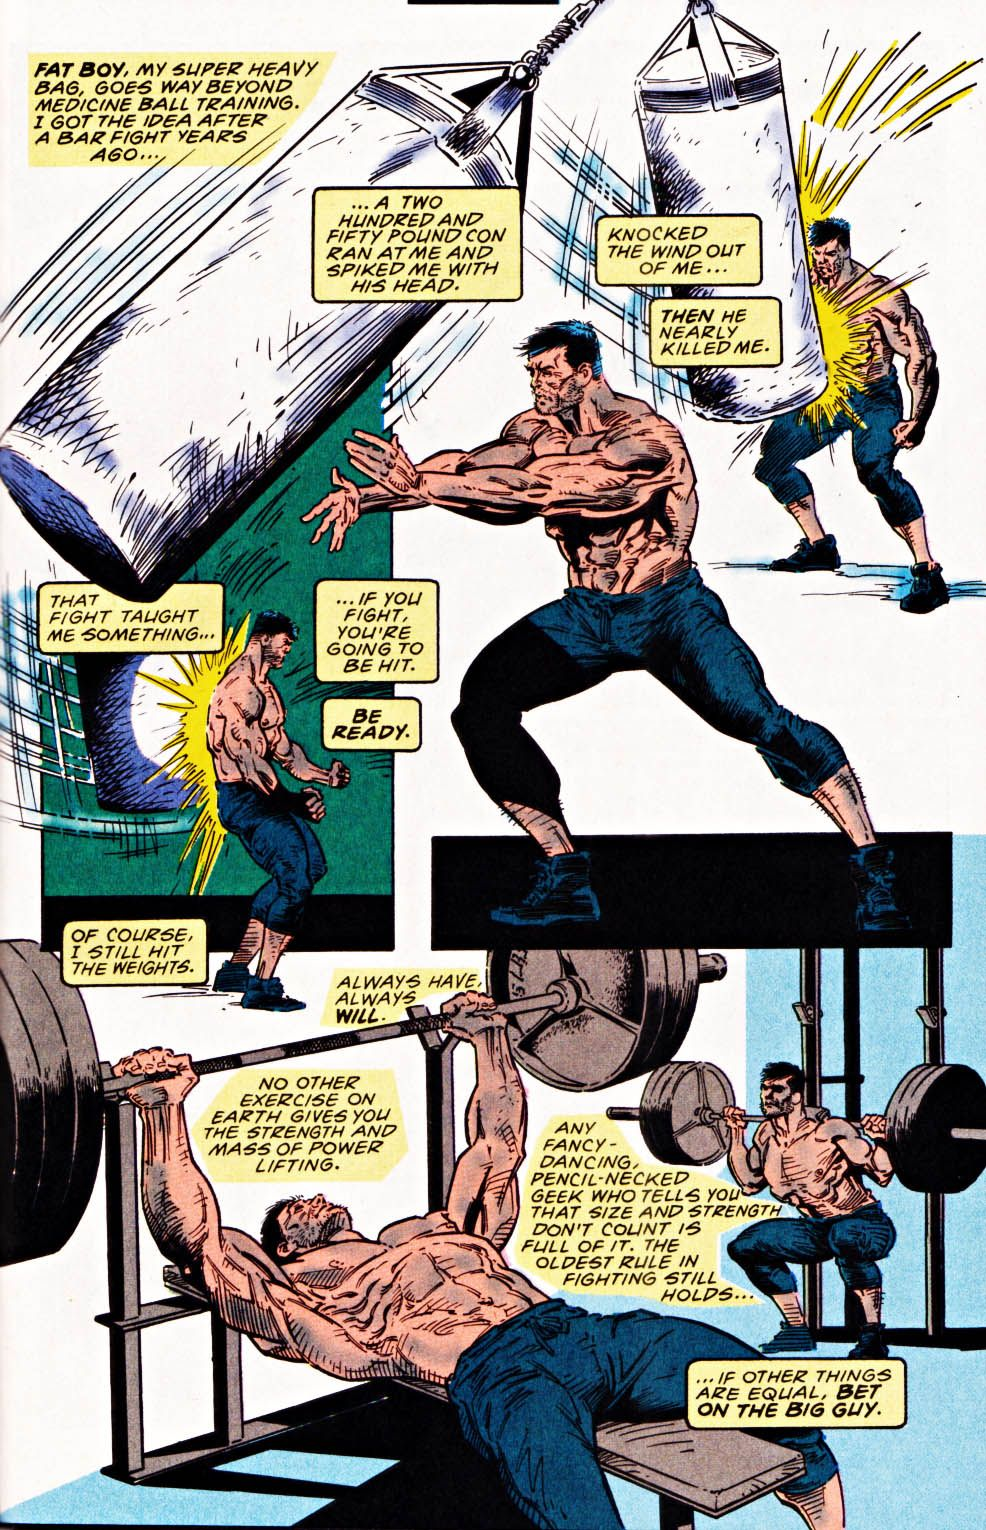 The Punisher War Zone Issue 23 Read The Punisher War Zone Issue 23 Comic Online In High Quality Punisher Comics Punisher Marvel Hulk Marvel